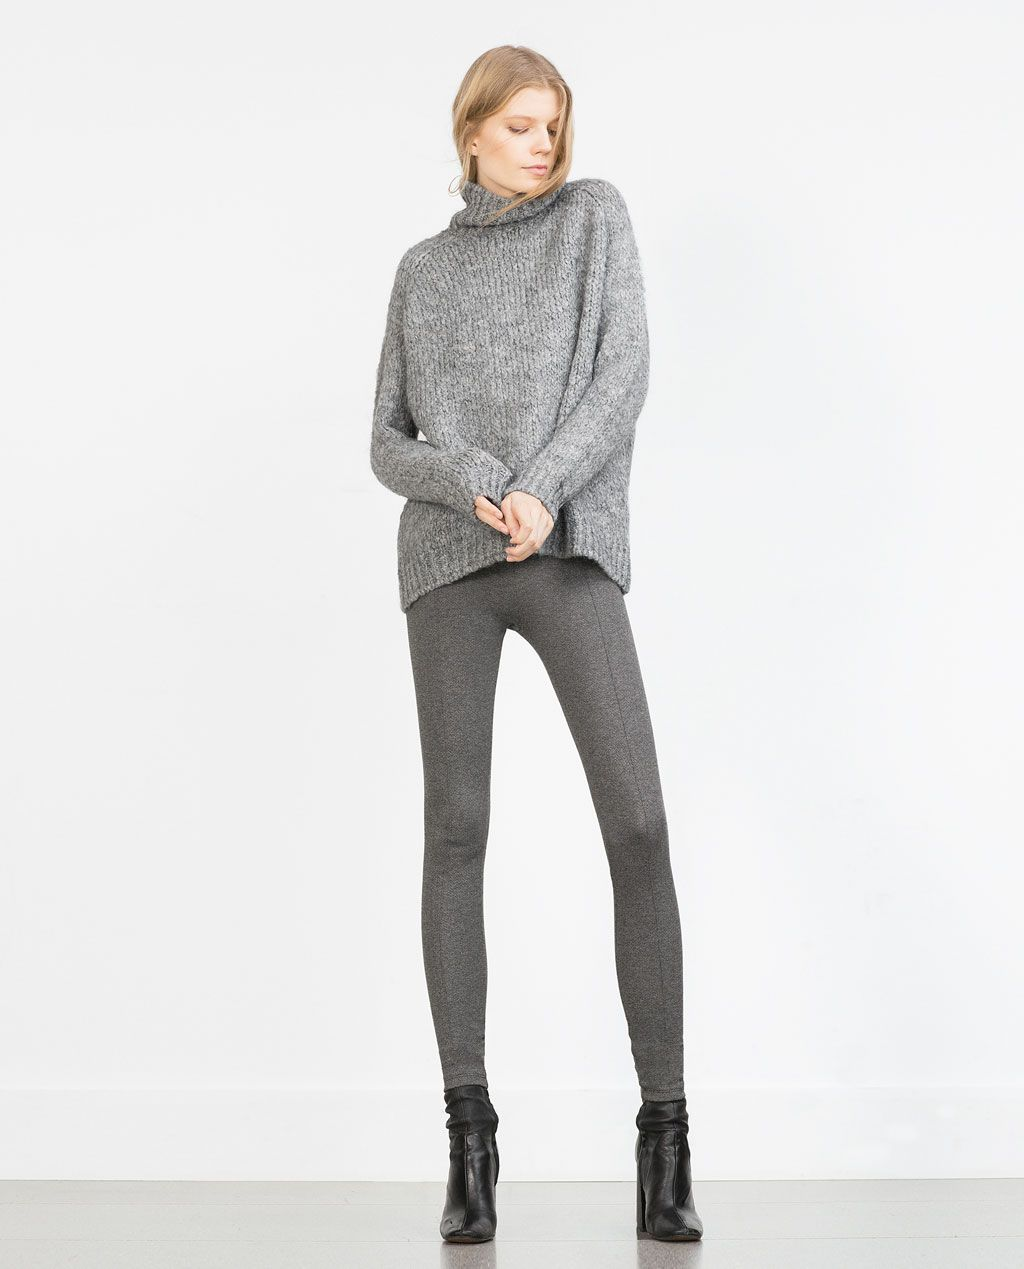 ZARA - WOMAN - JACQUARD HERRINGBONE LEGGINGS